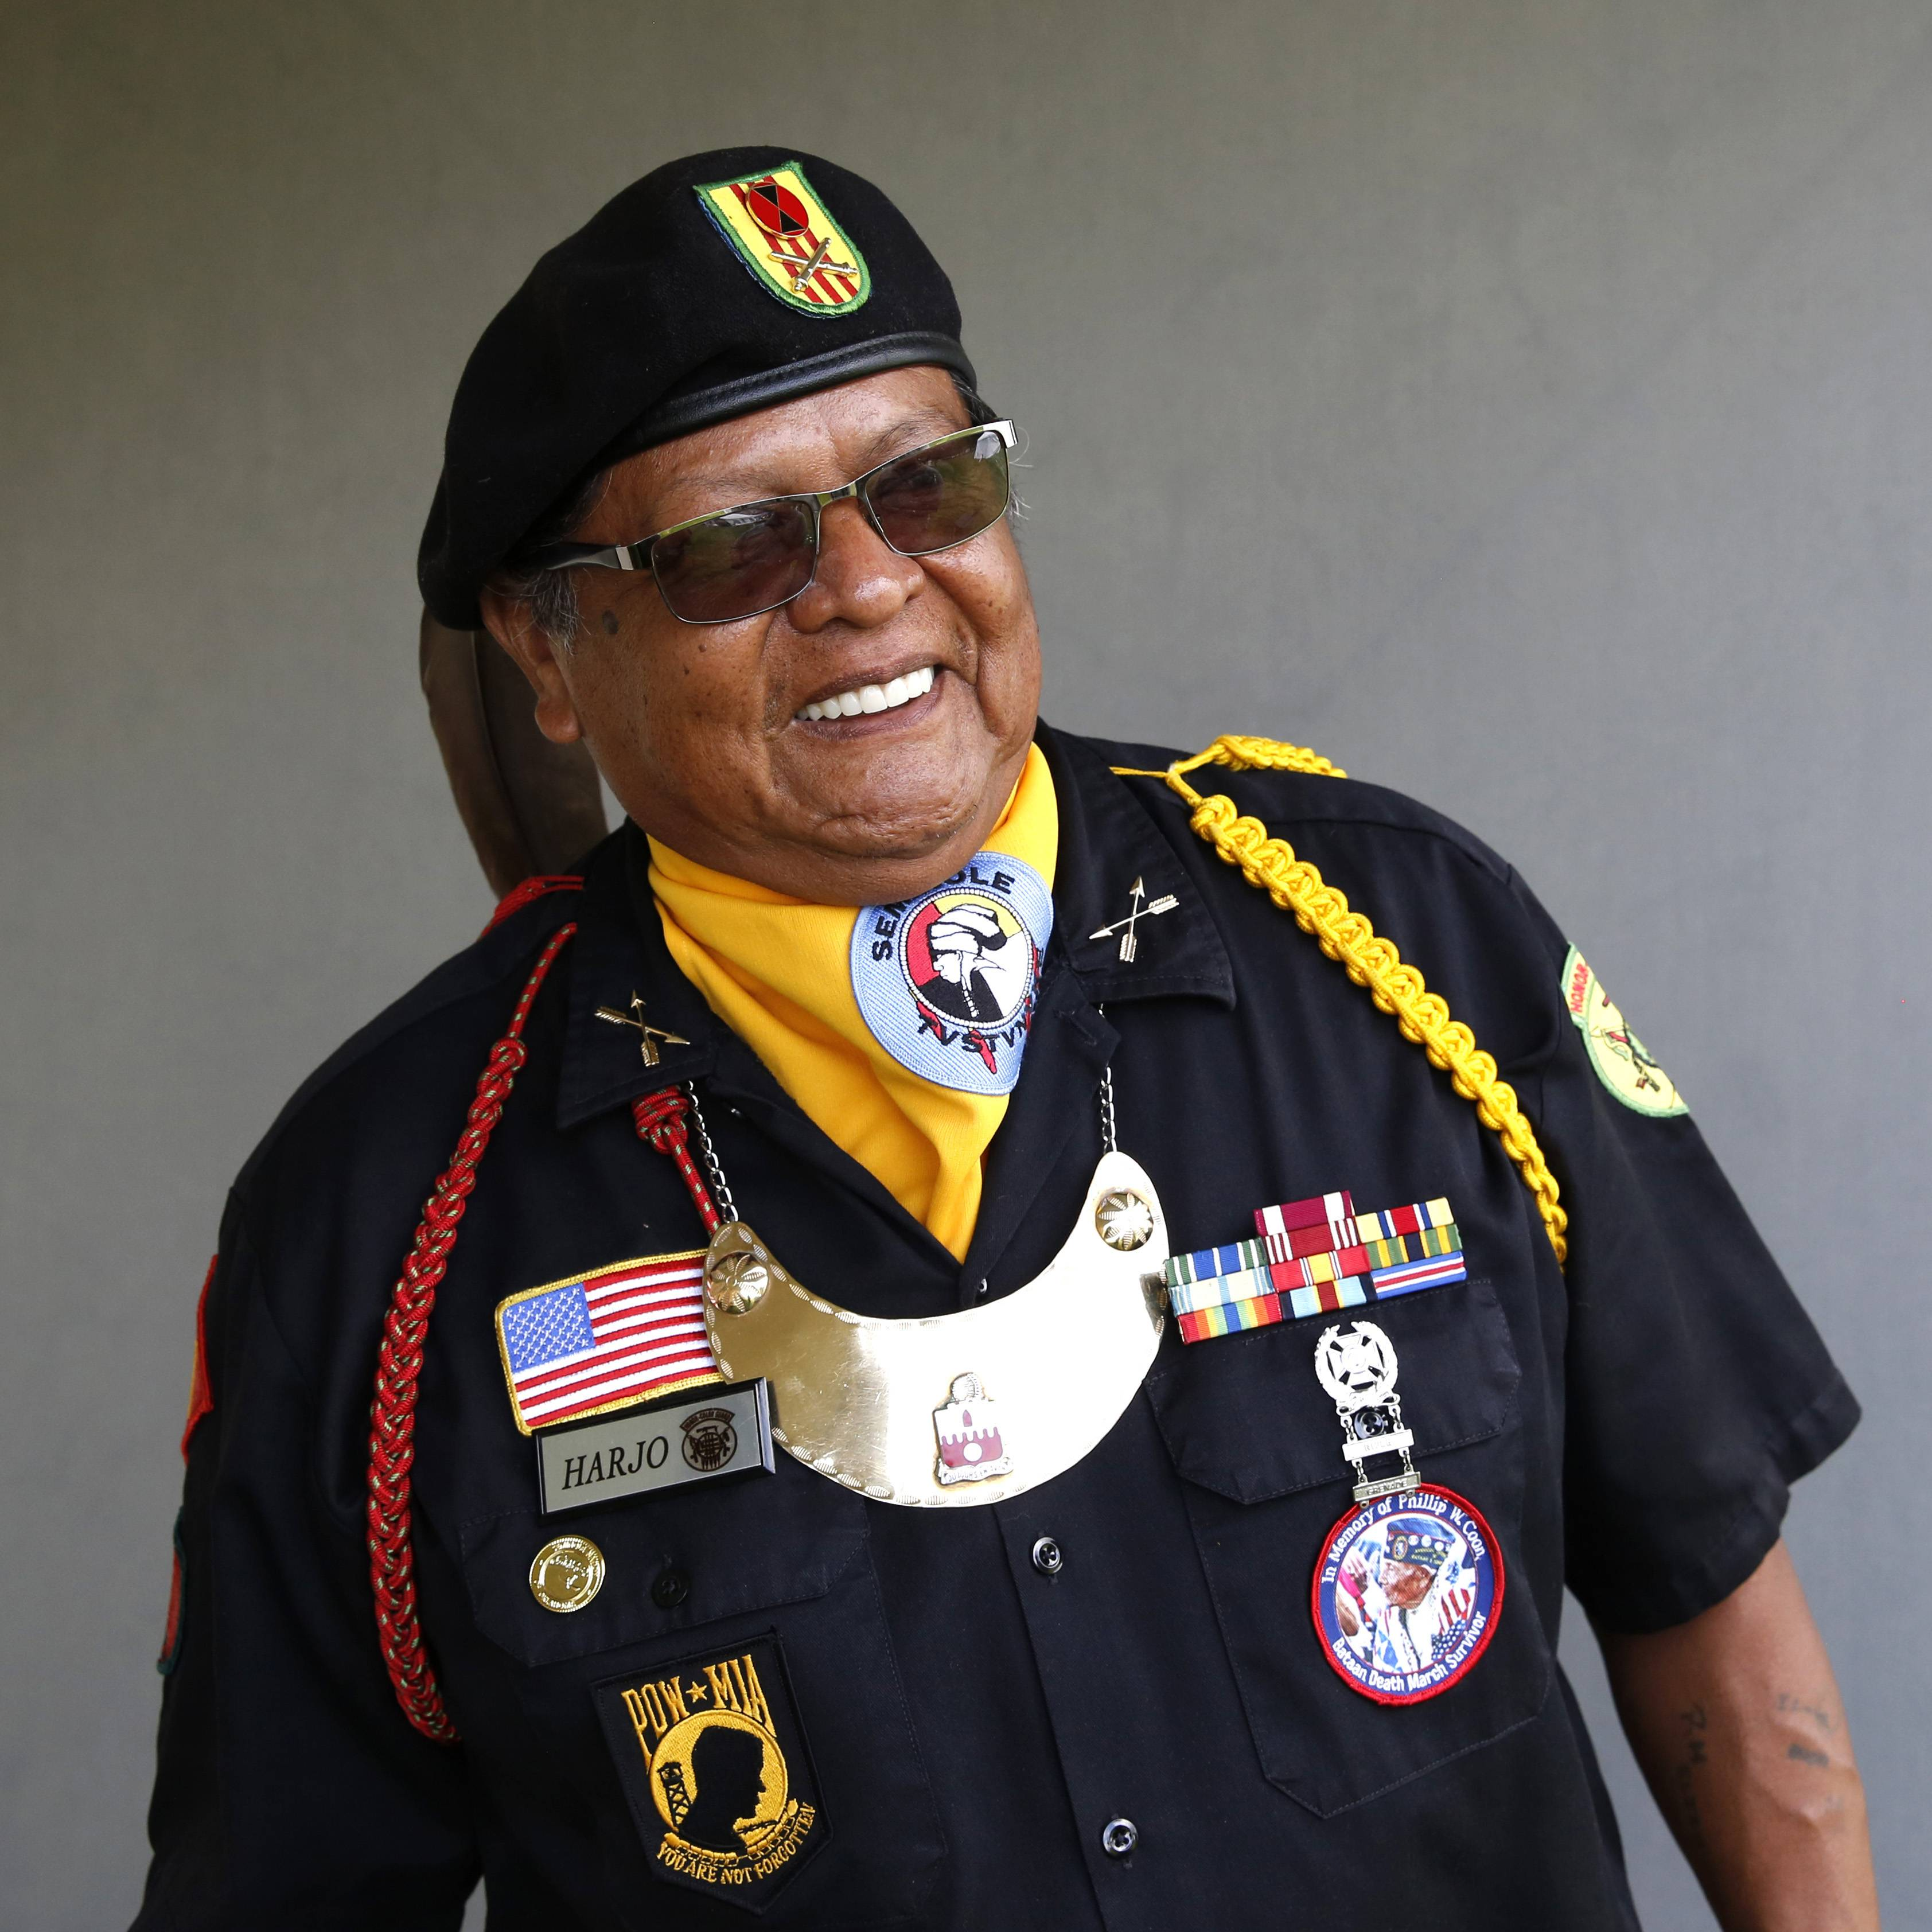 American Indian veterans gather at Cantigny: 'It helps a lot when you talk'